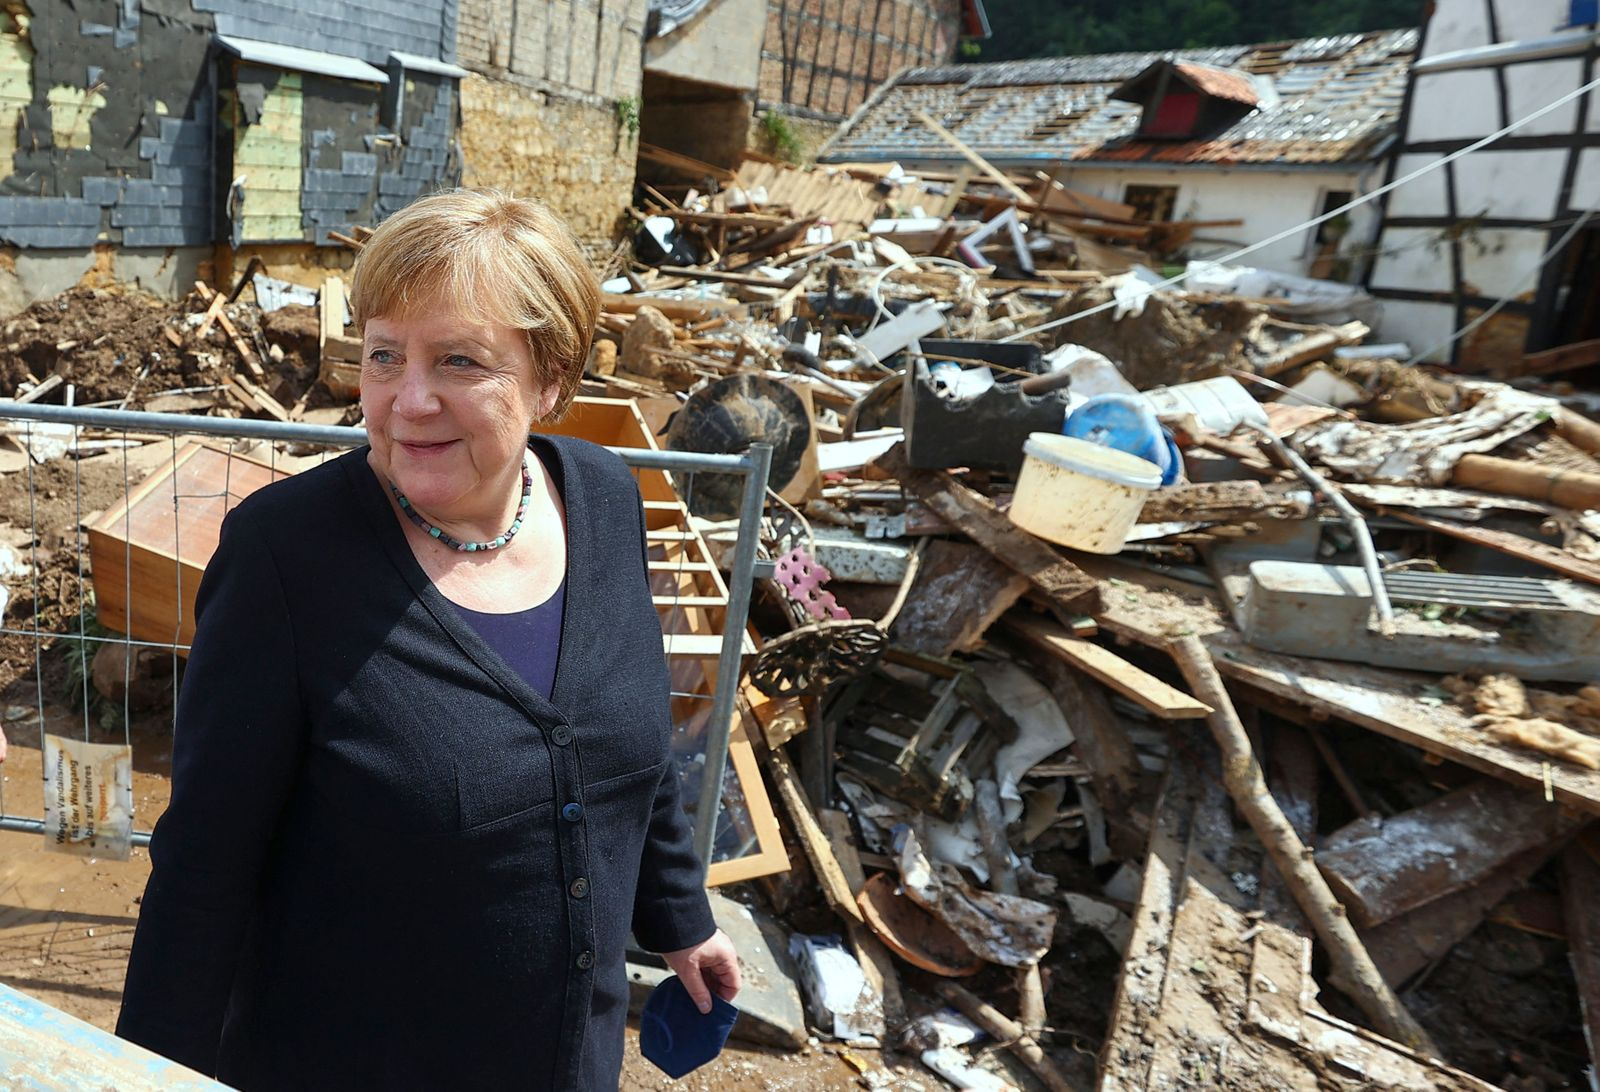 GERMANY-EUROPE-WEATHER-FLOODS-GOVERNMENT